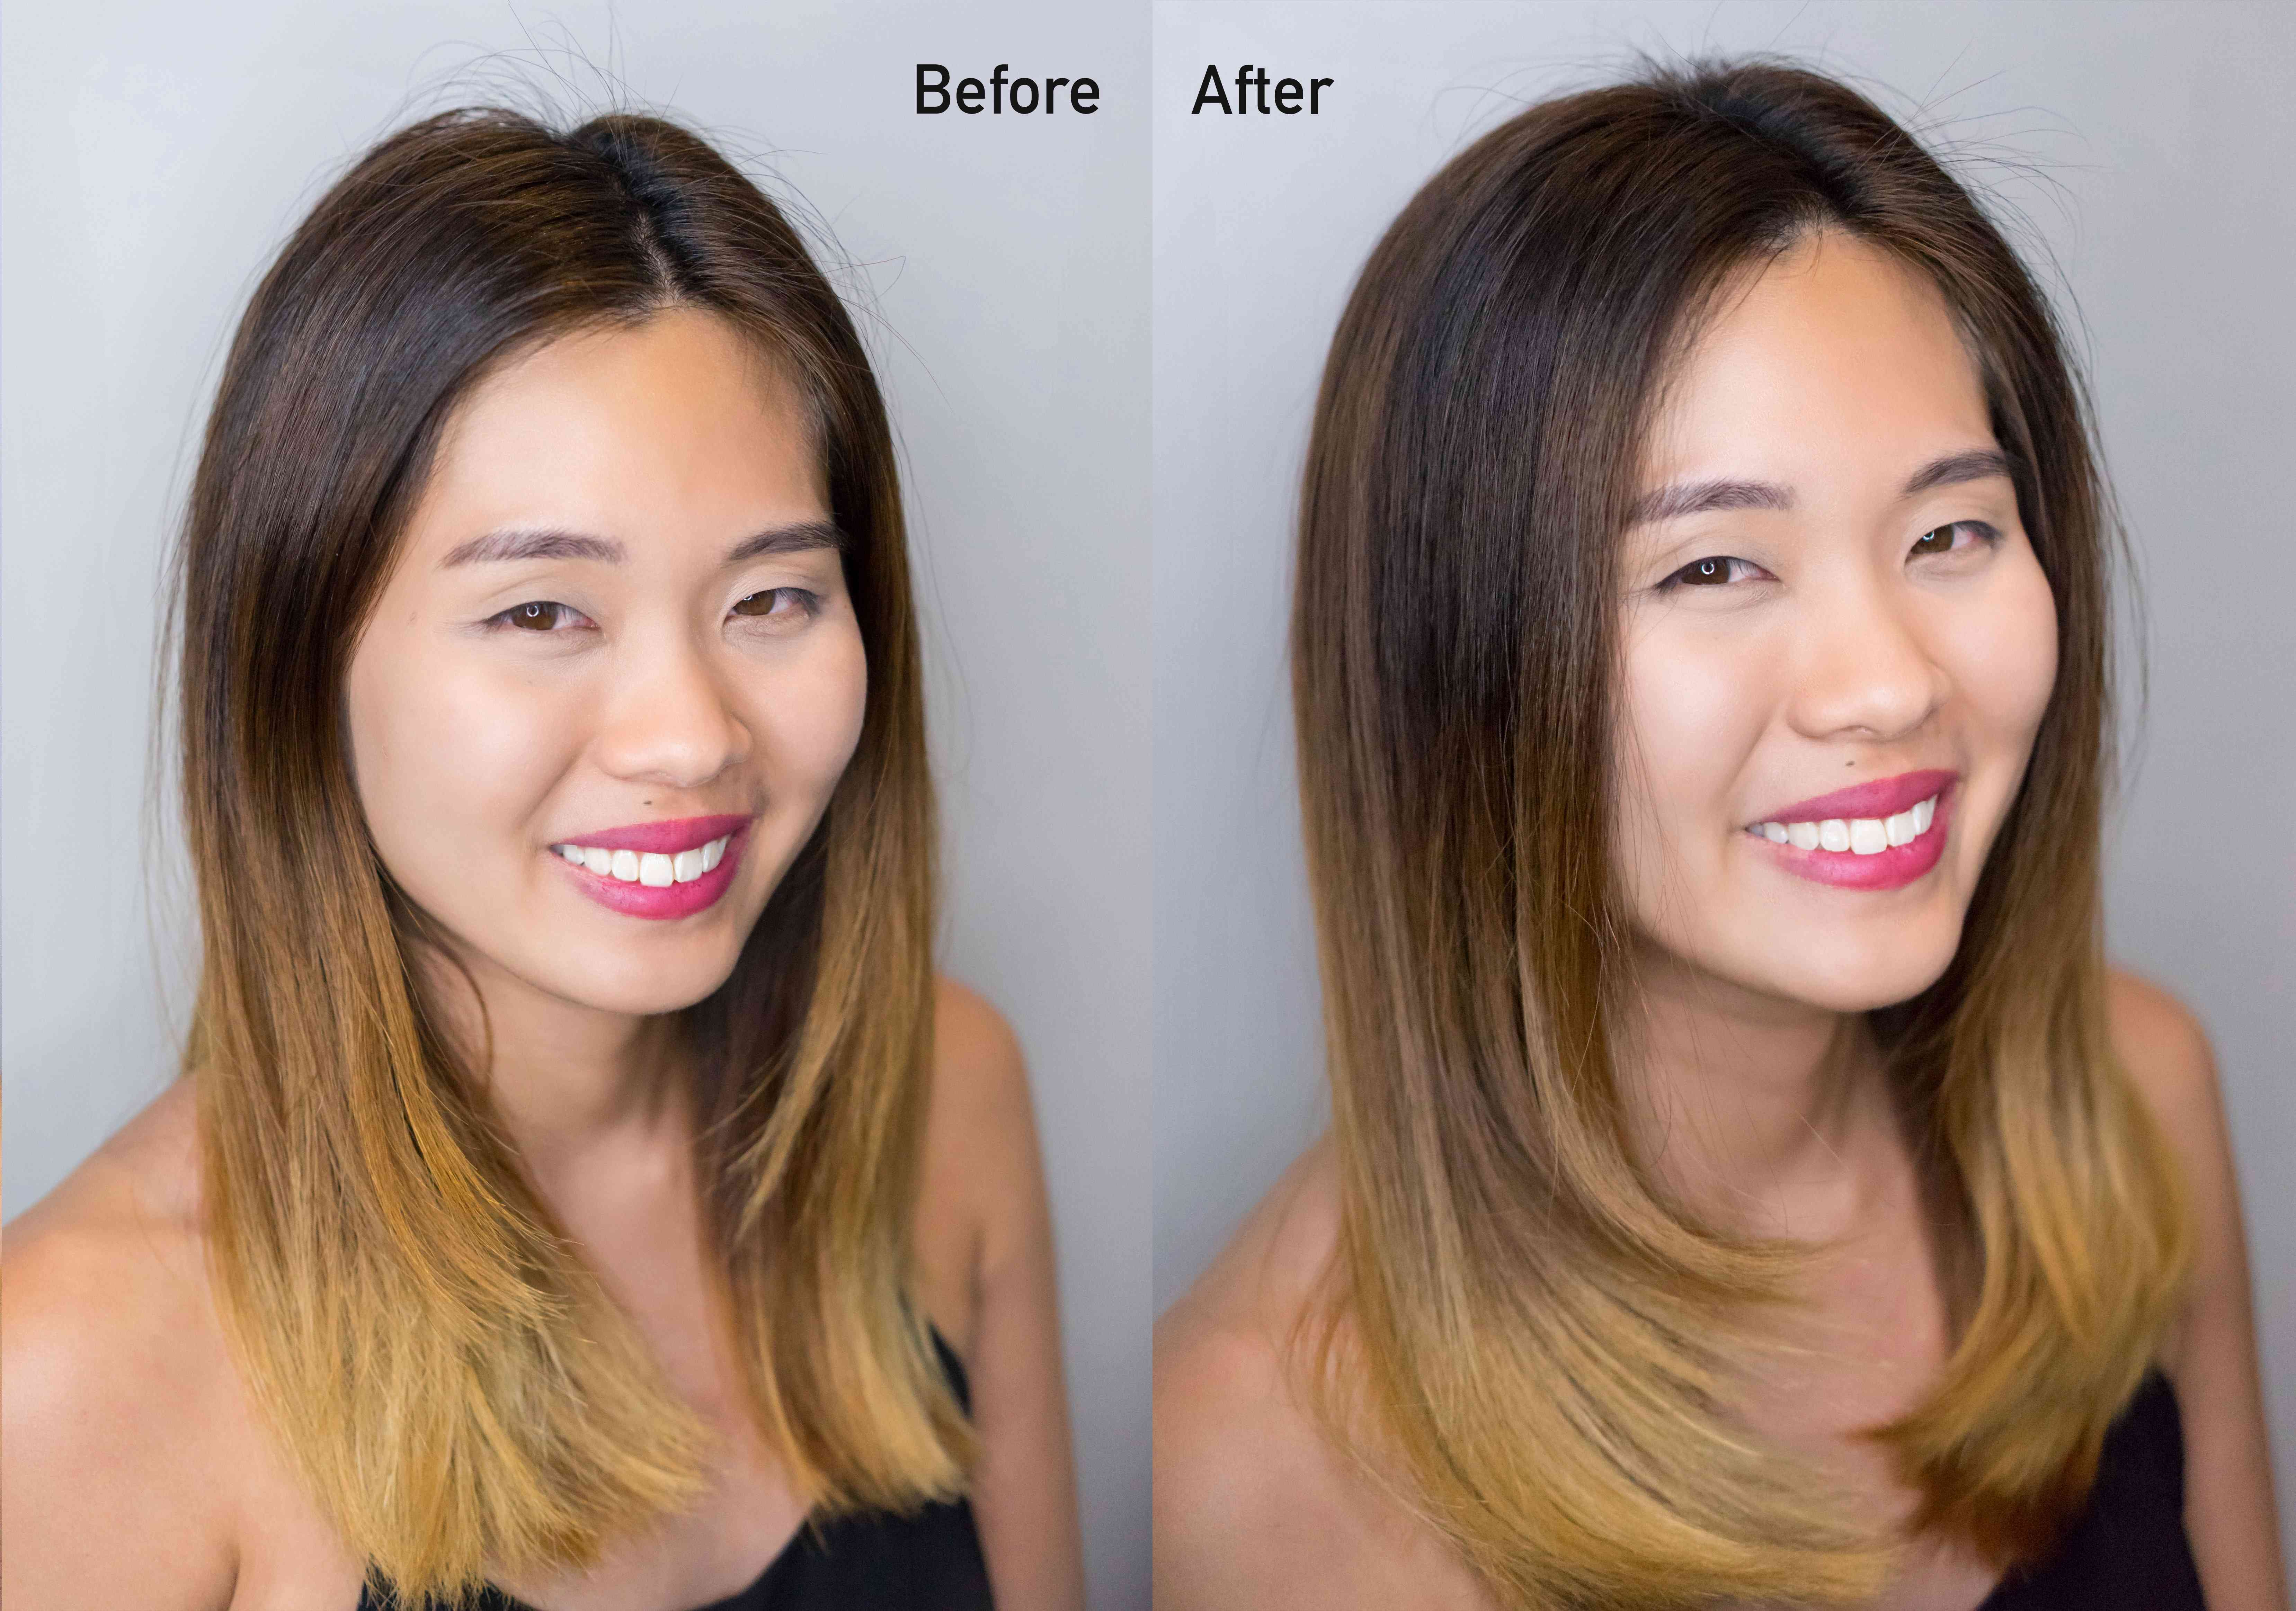 Rebecca Treatment Before and After